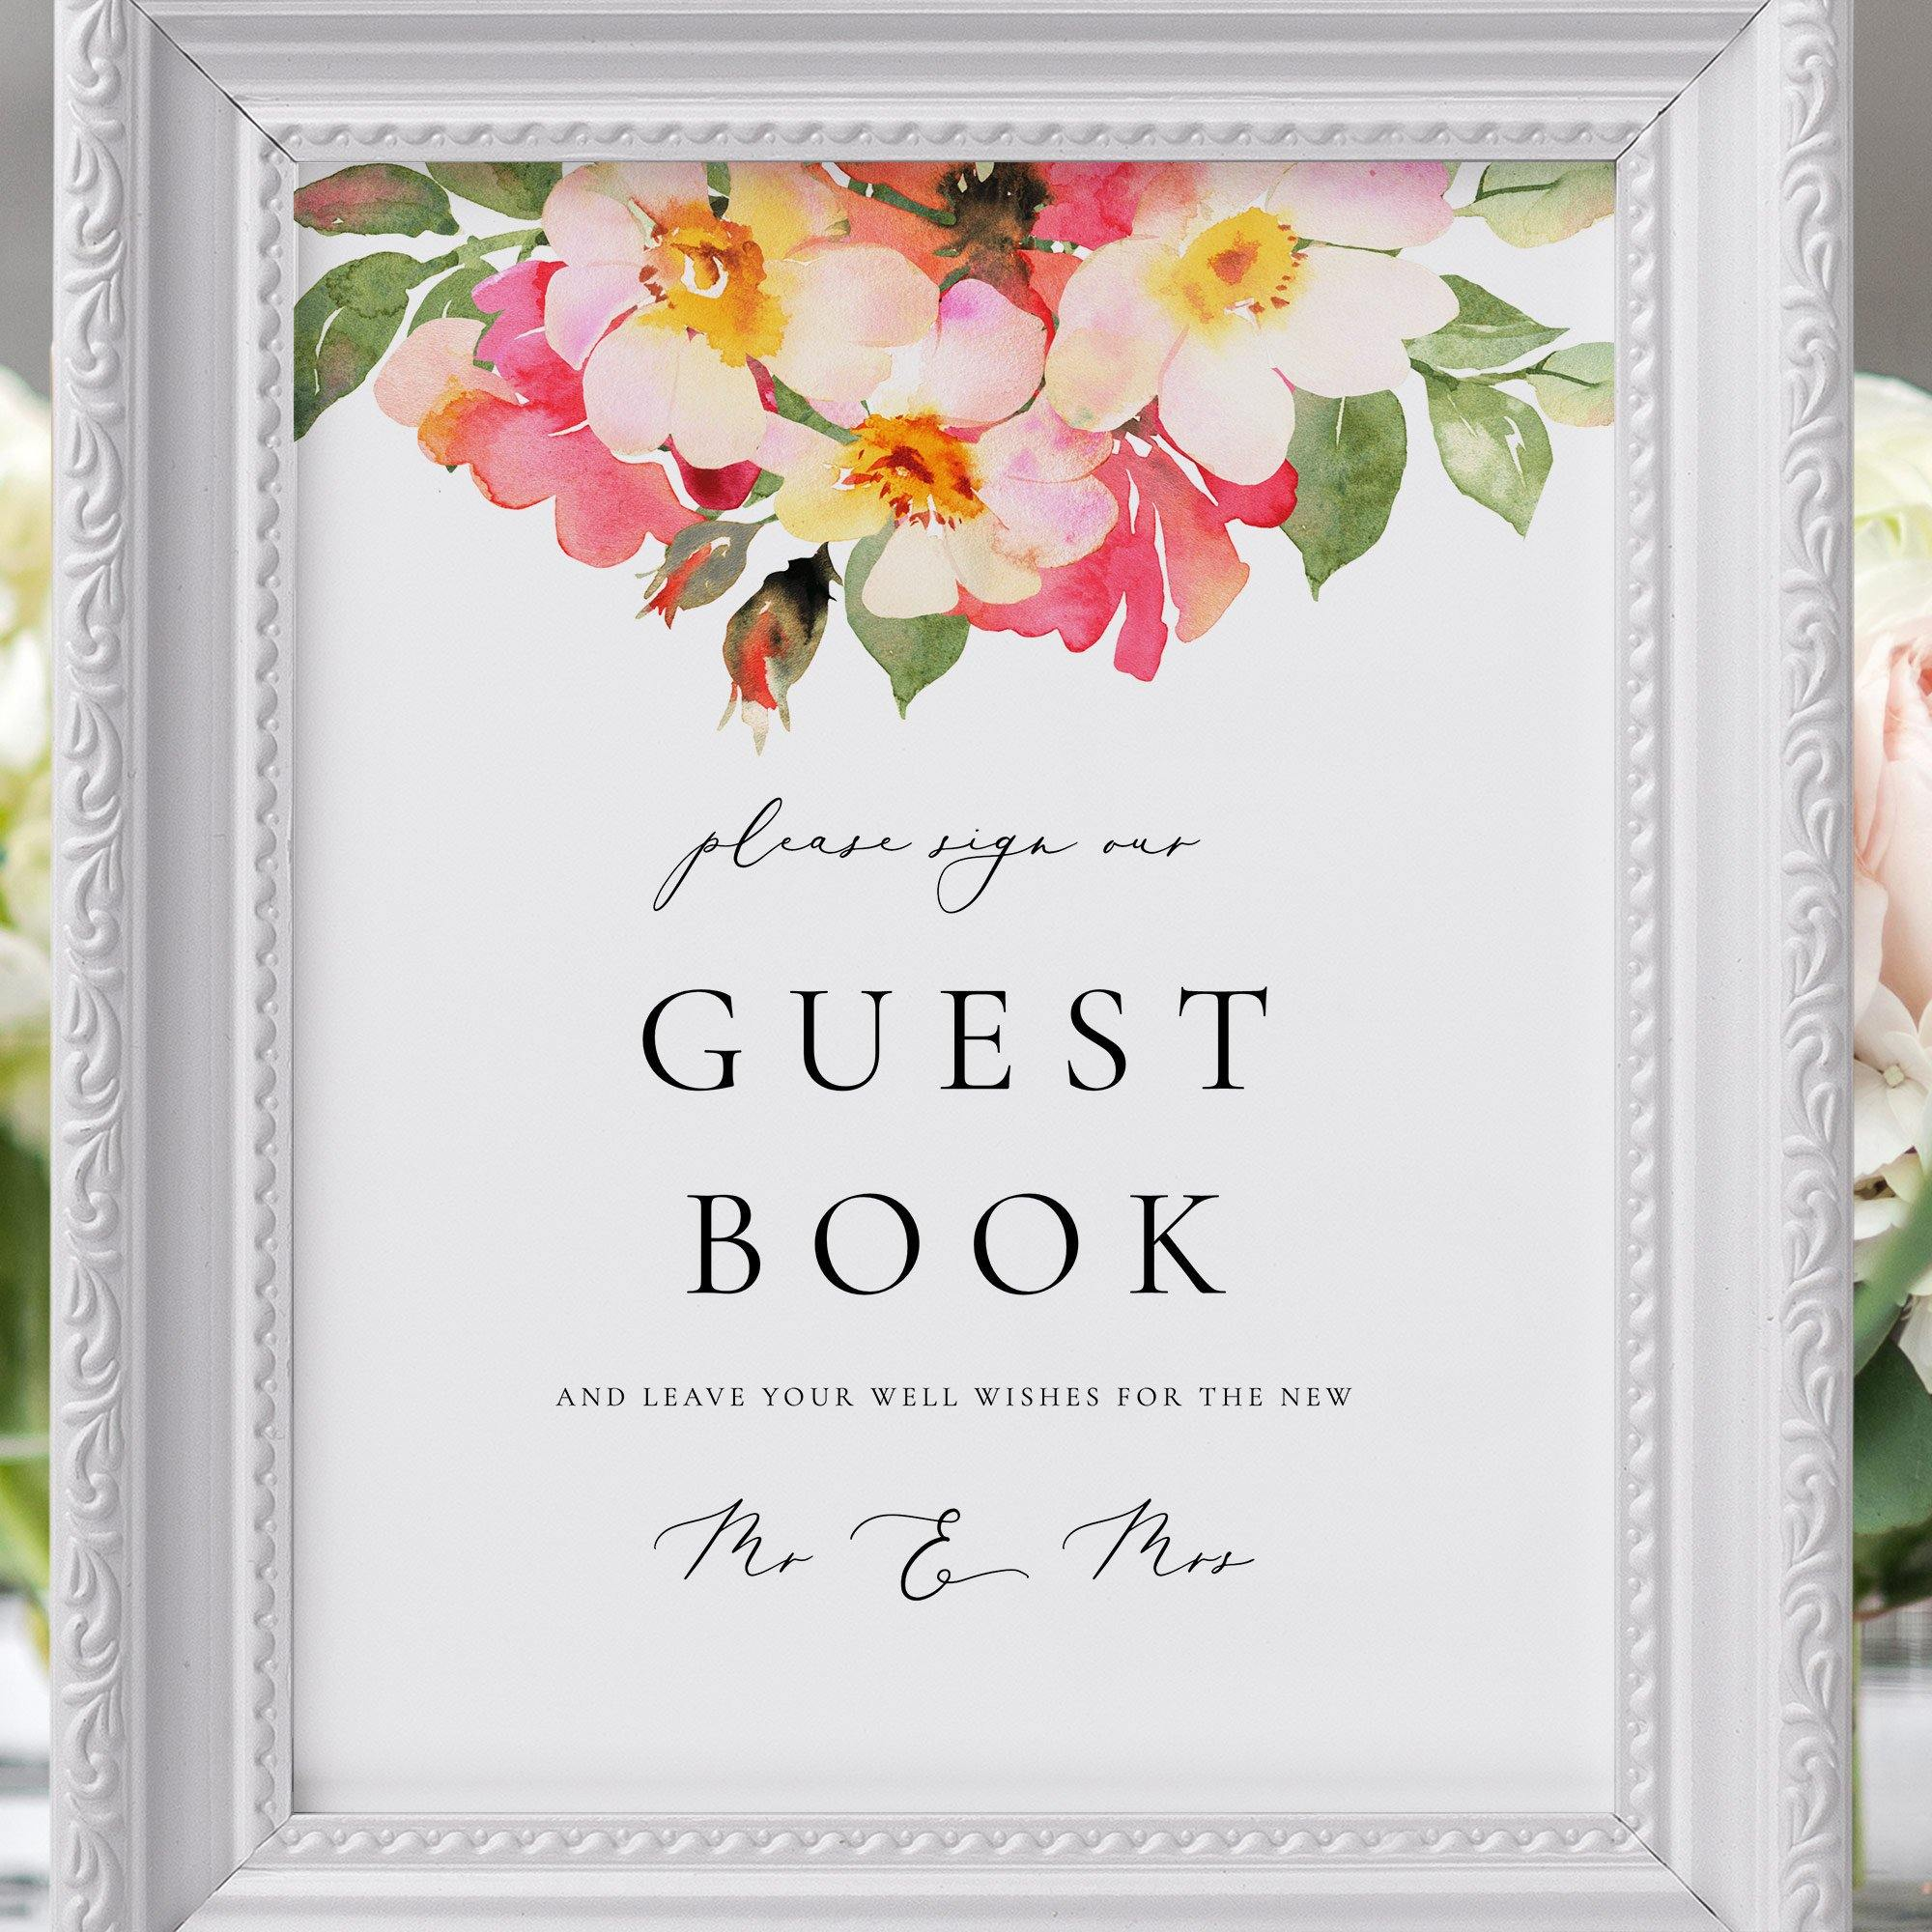 Guest Book Sign  Template Printable Sign  Calligraphy Floral Illustration